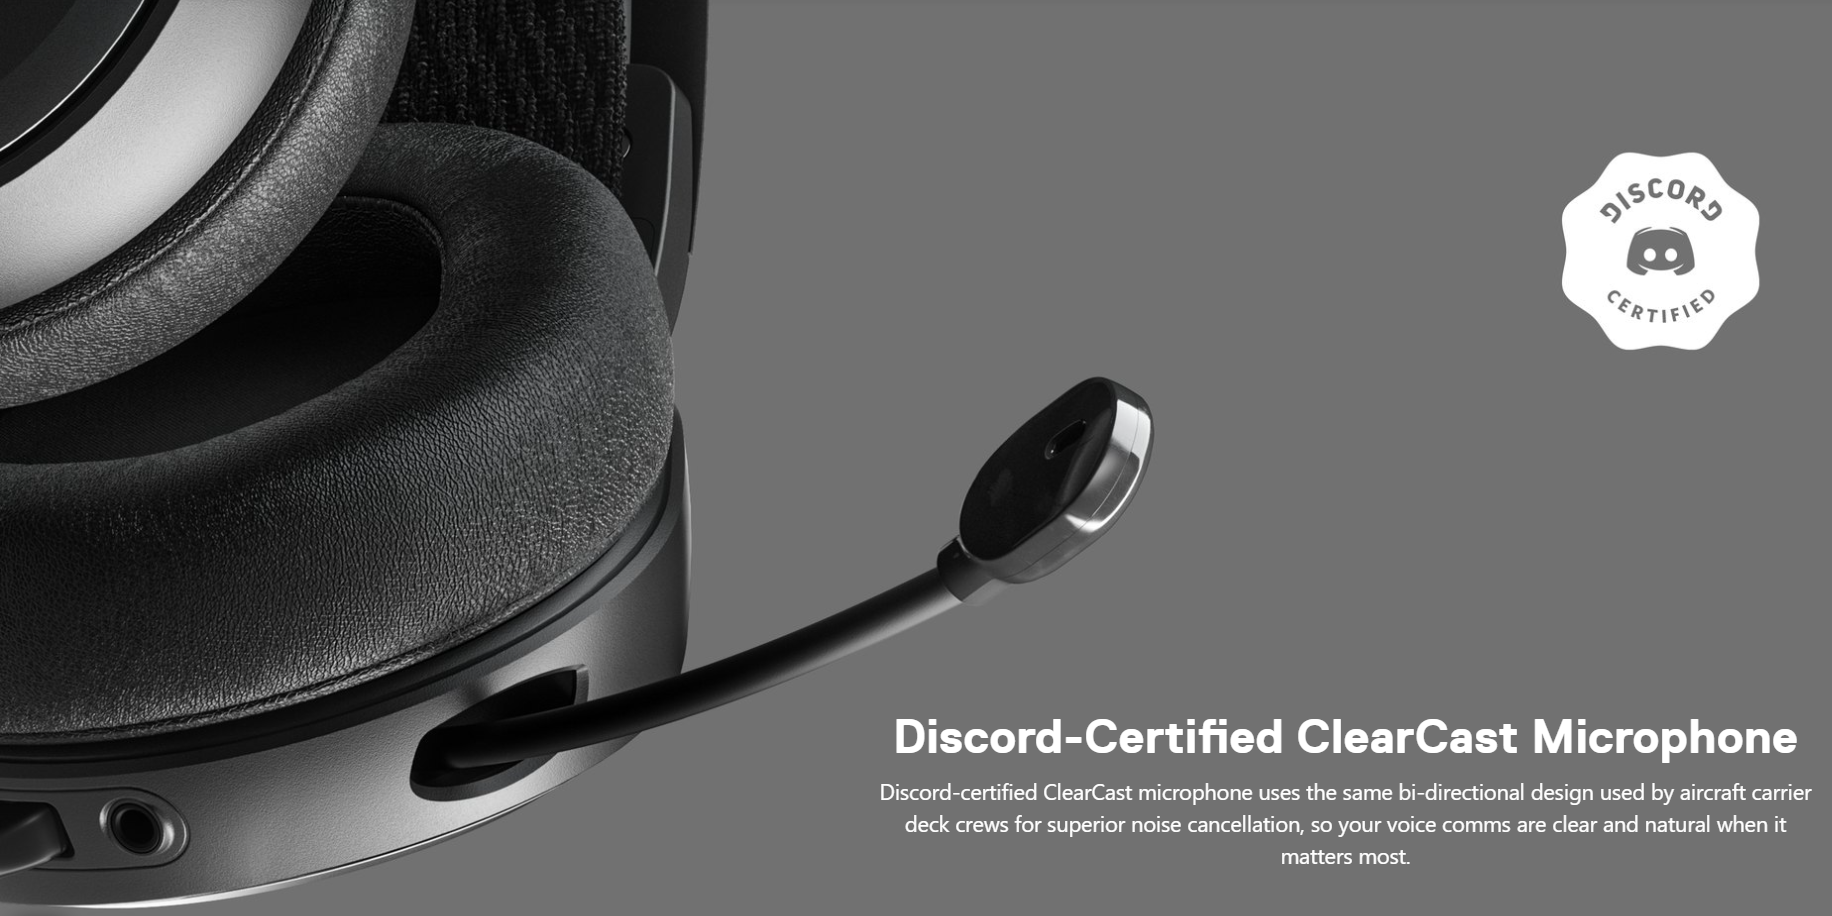 SteelSeries Arctis Prime - Discord-Certified ClearCast Microphone